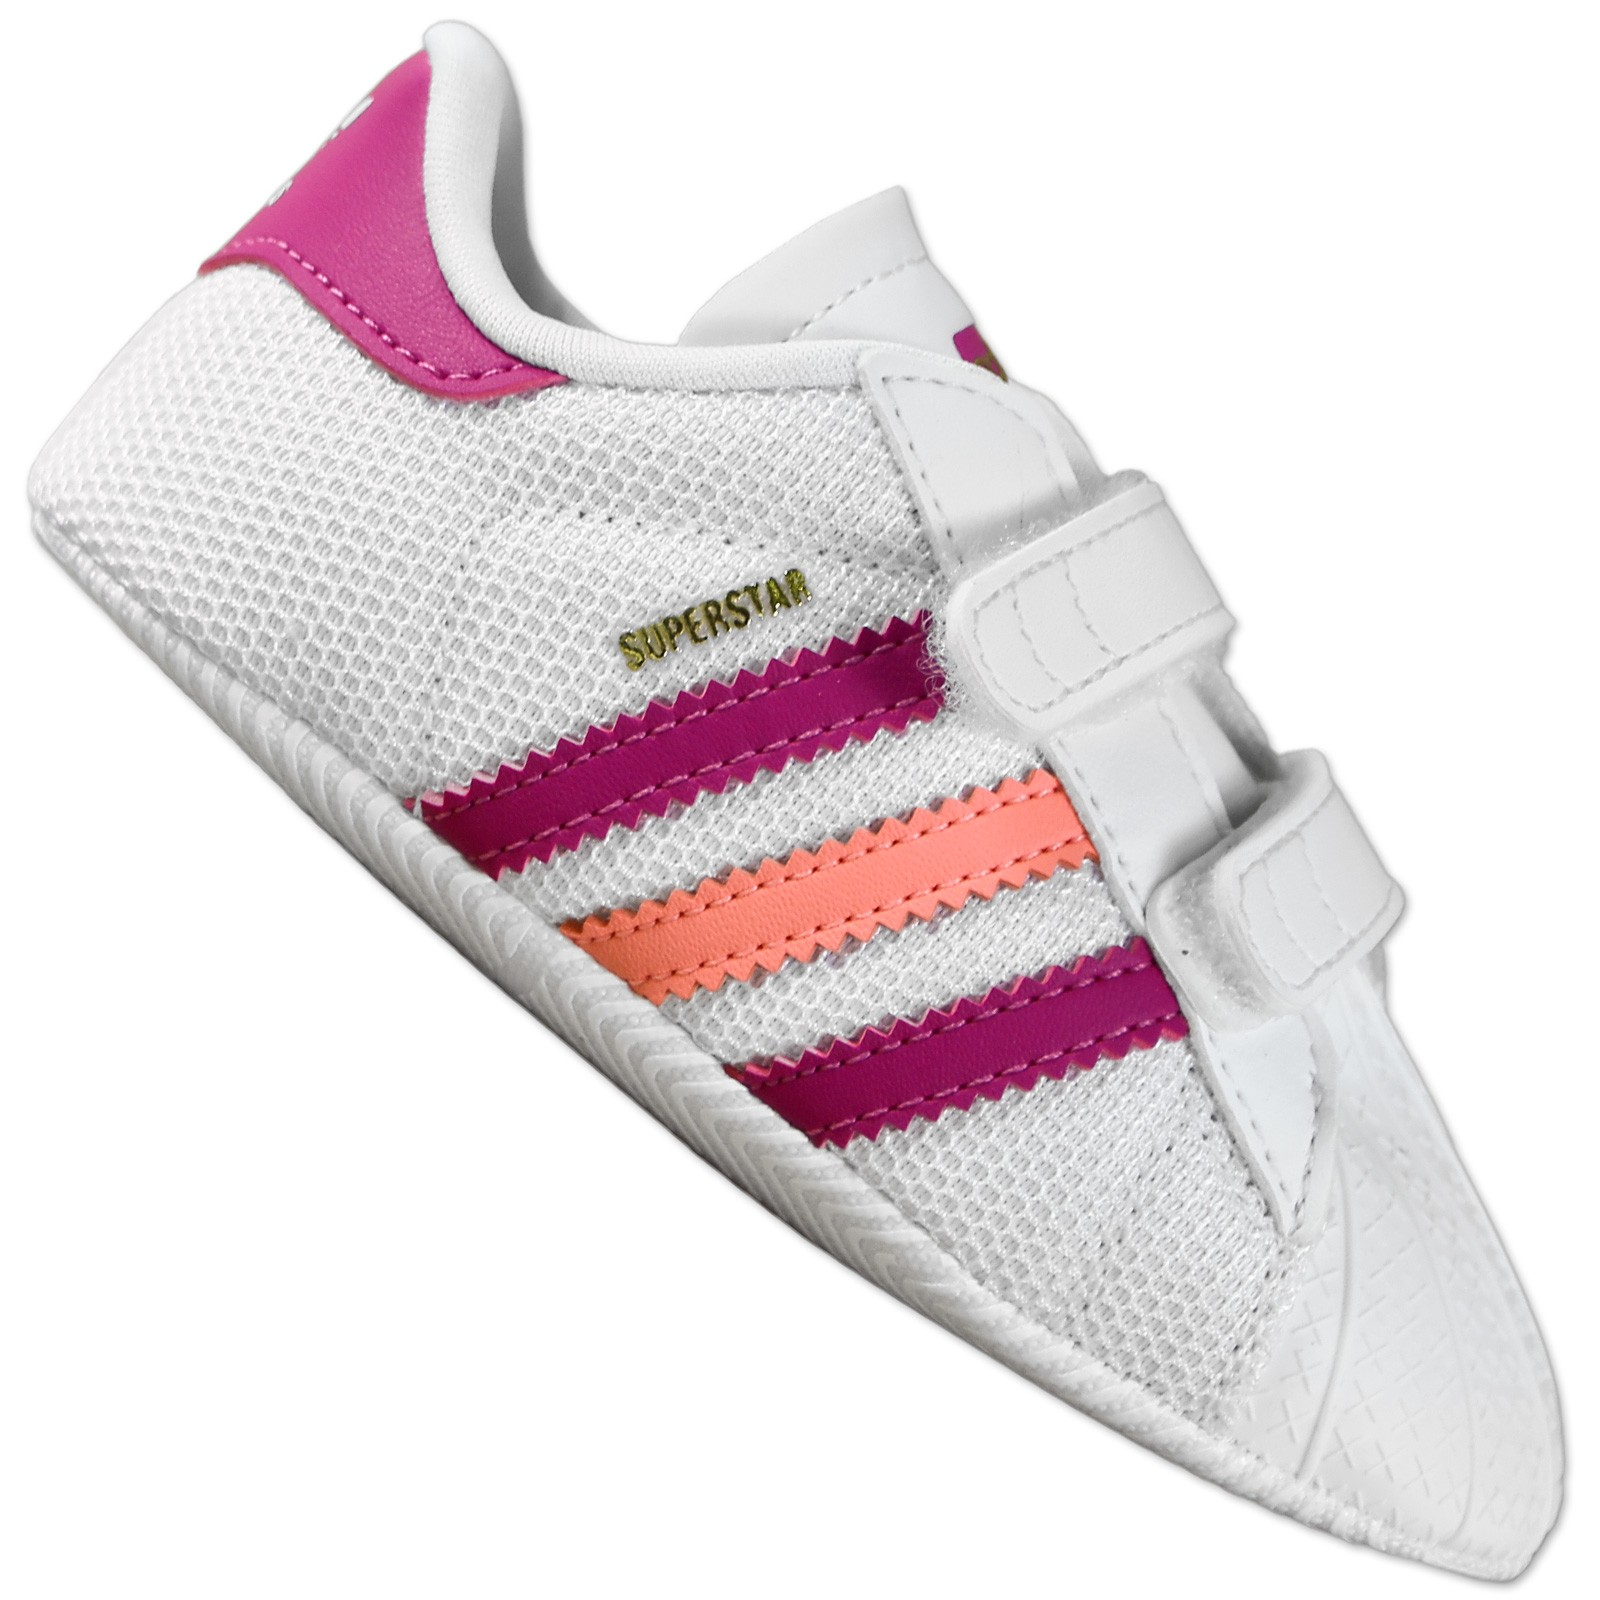 adidas originals superstar 2 crib baby trainers crawl shoes white rose pink 21 ebay. Black Bedroom Furniture Sets. Home Design Ideas